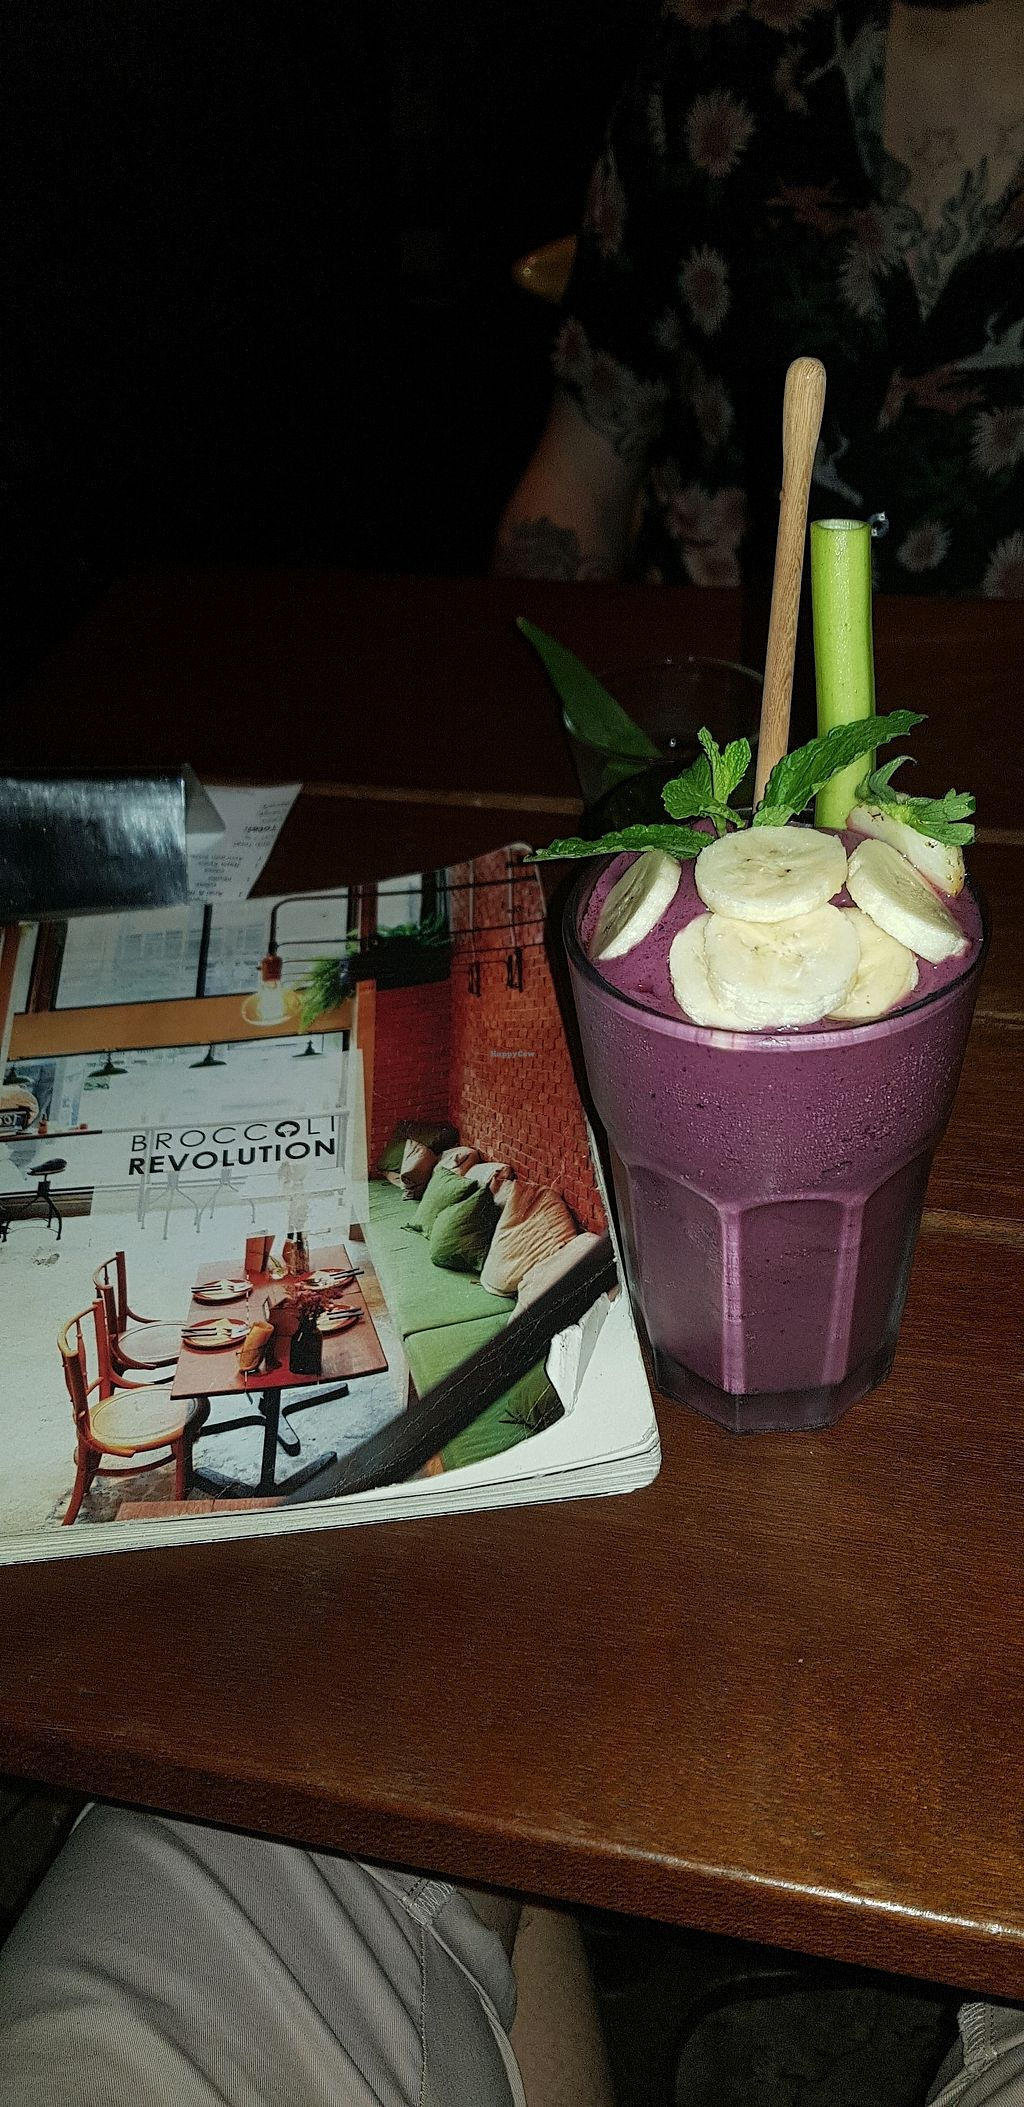 """Photo of Broccoli Revolution - Sukhumvit Rd  by <a href=""""/members/profile/AliMac84"""">AliMac84</a> <br/>acai smoothie <br/> March 21, 2018  - <a href='/contact/abuse/image/64334/373859'>Report</a>"""